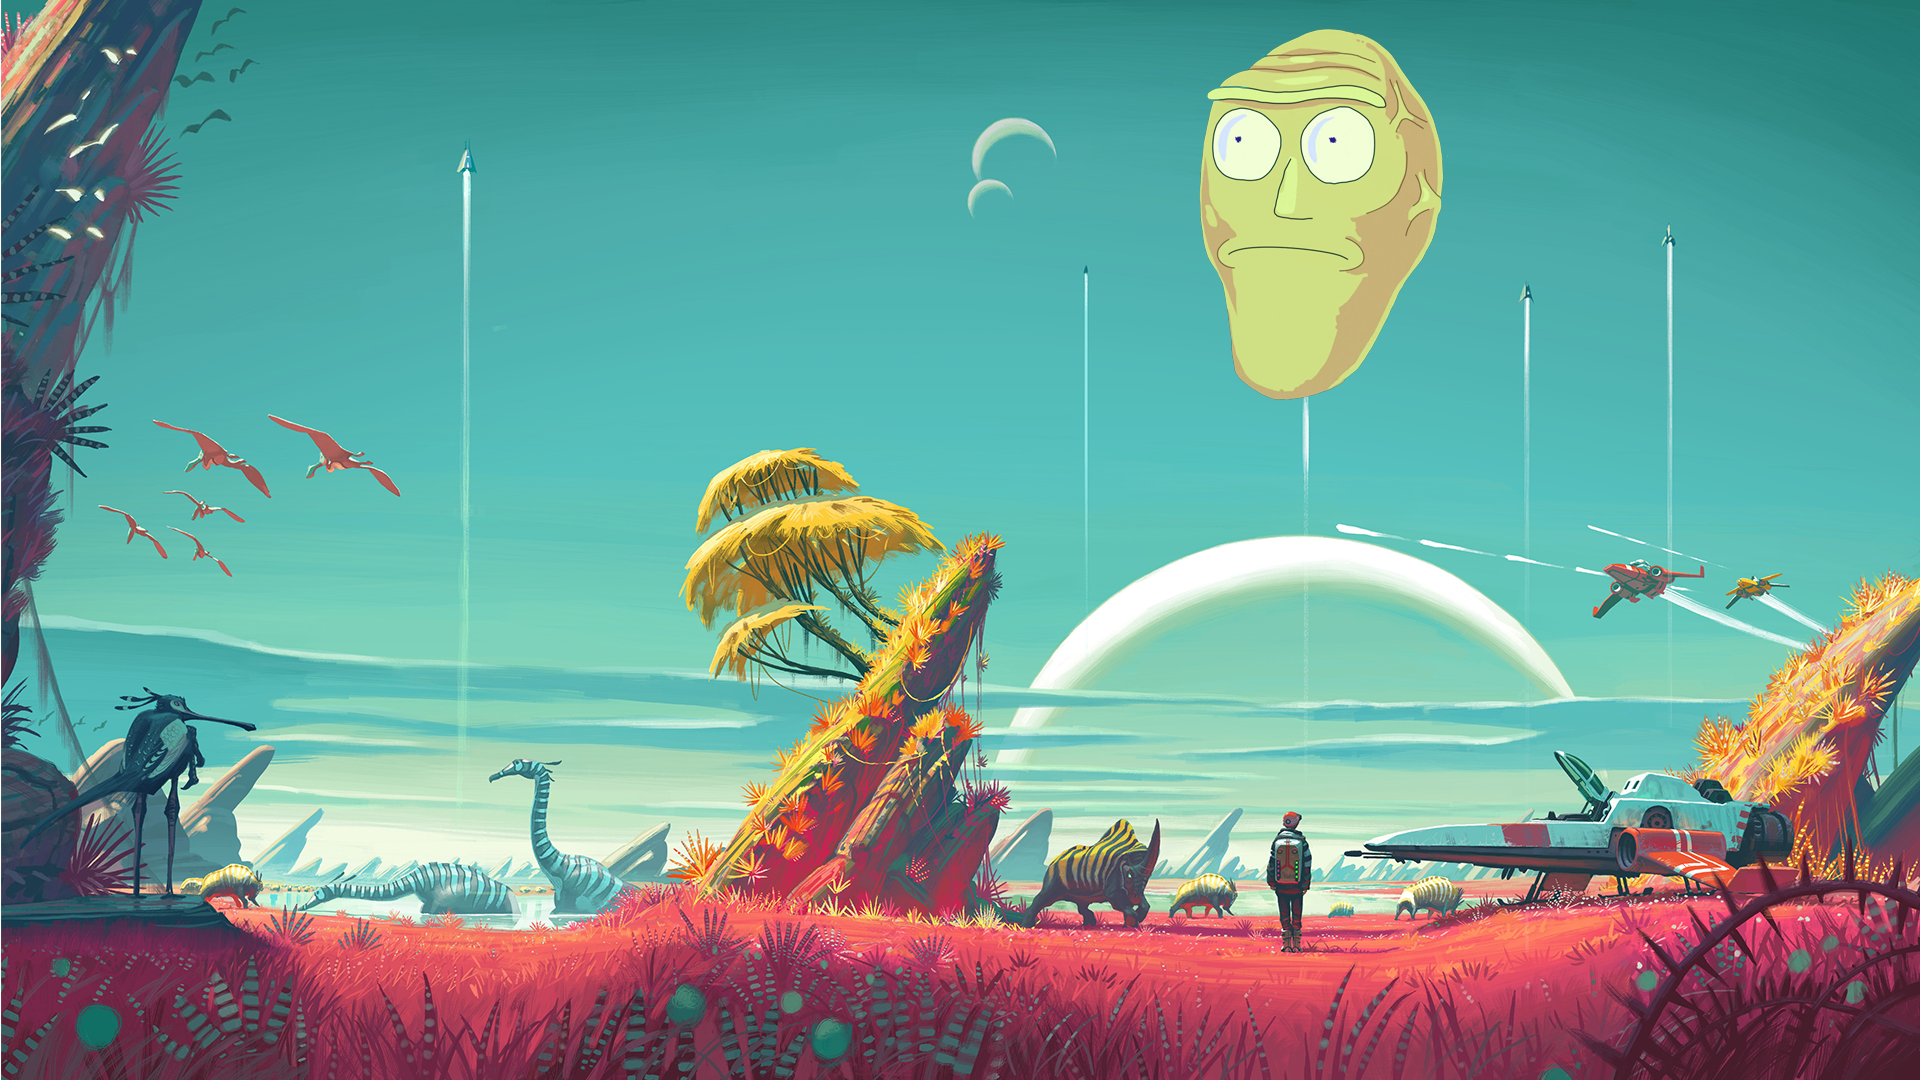 Rick and Morty Wallpaper Full HD Pictures 1920x1080